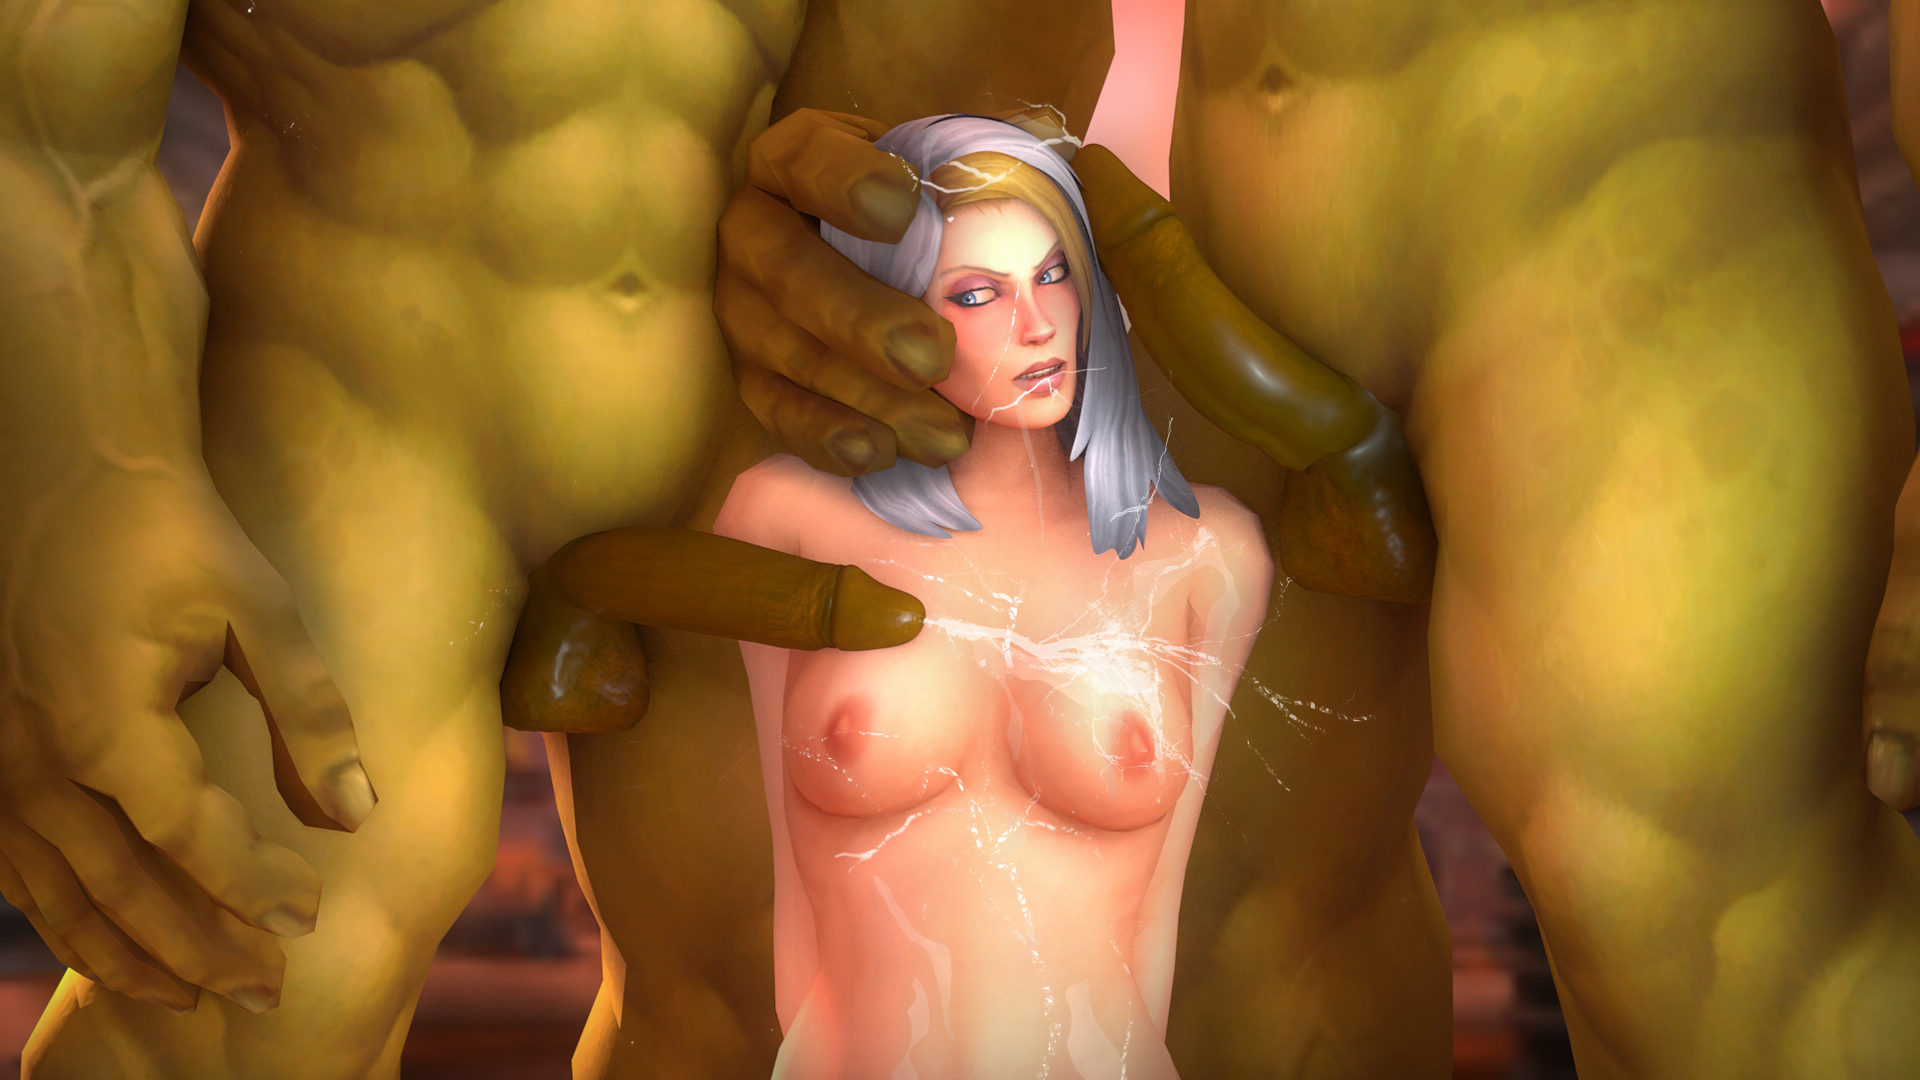 Me? World warcraft porn topic Let